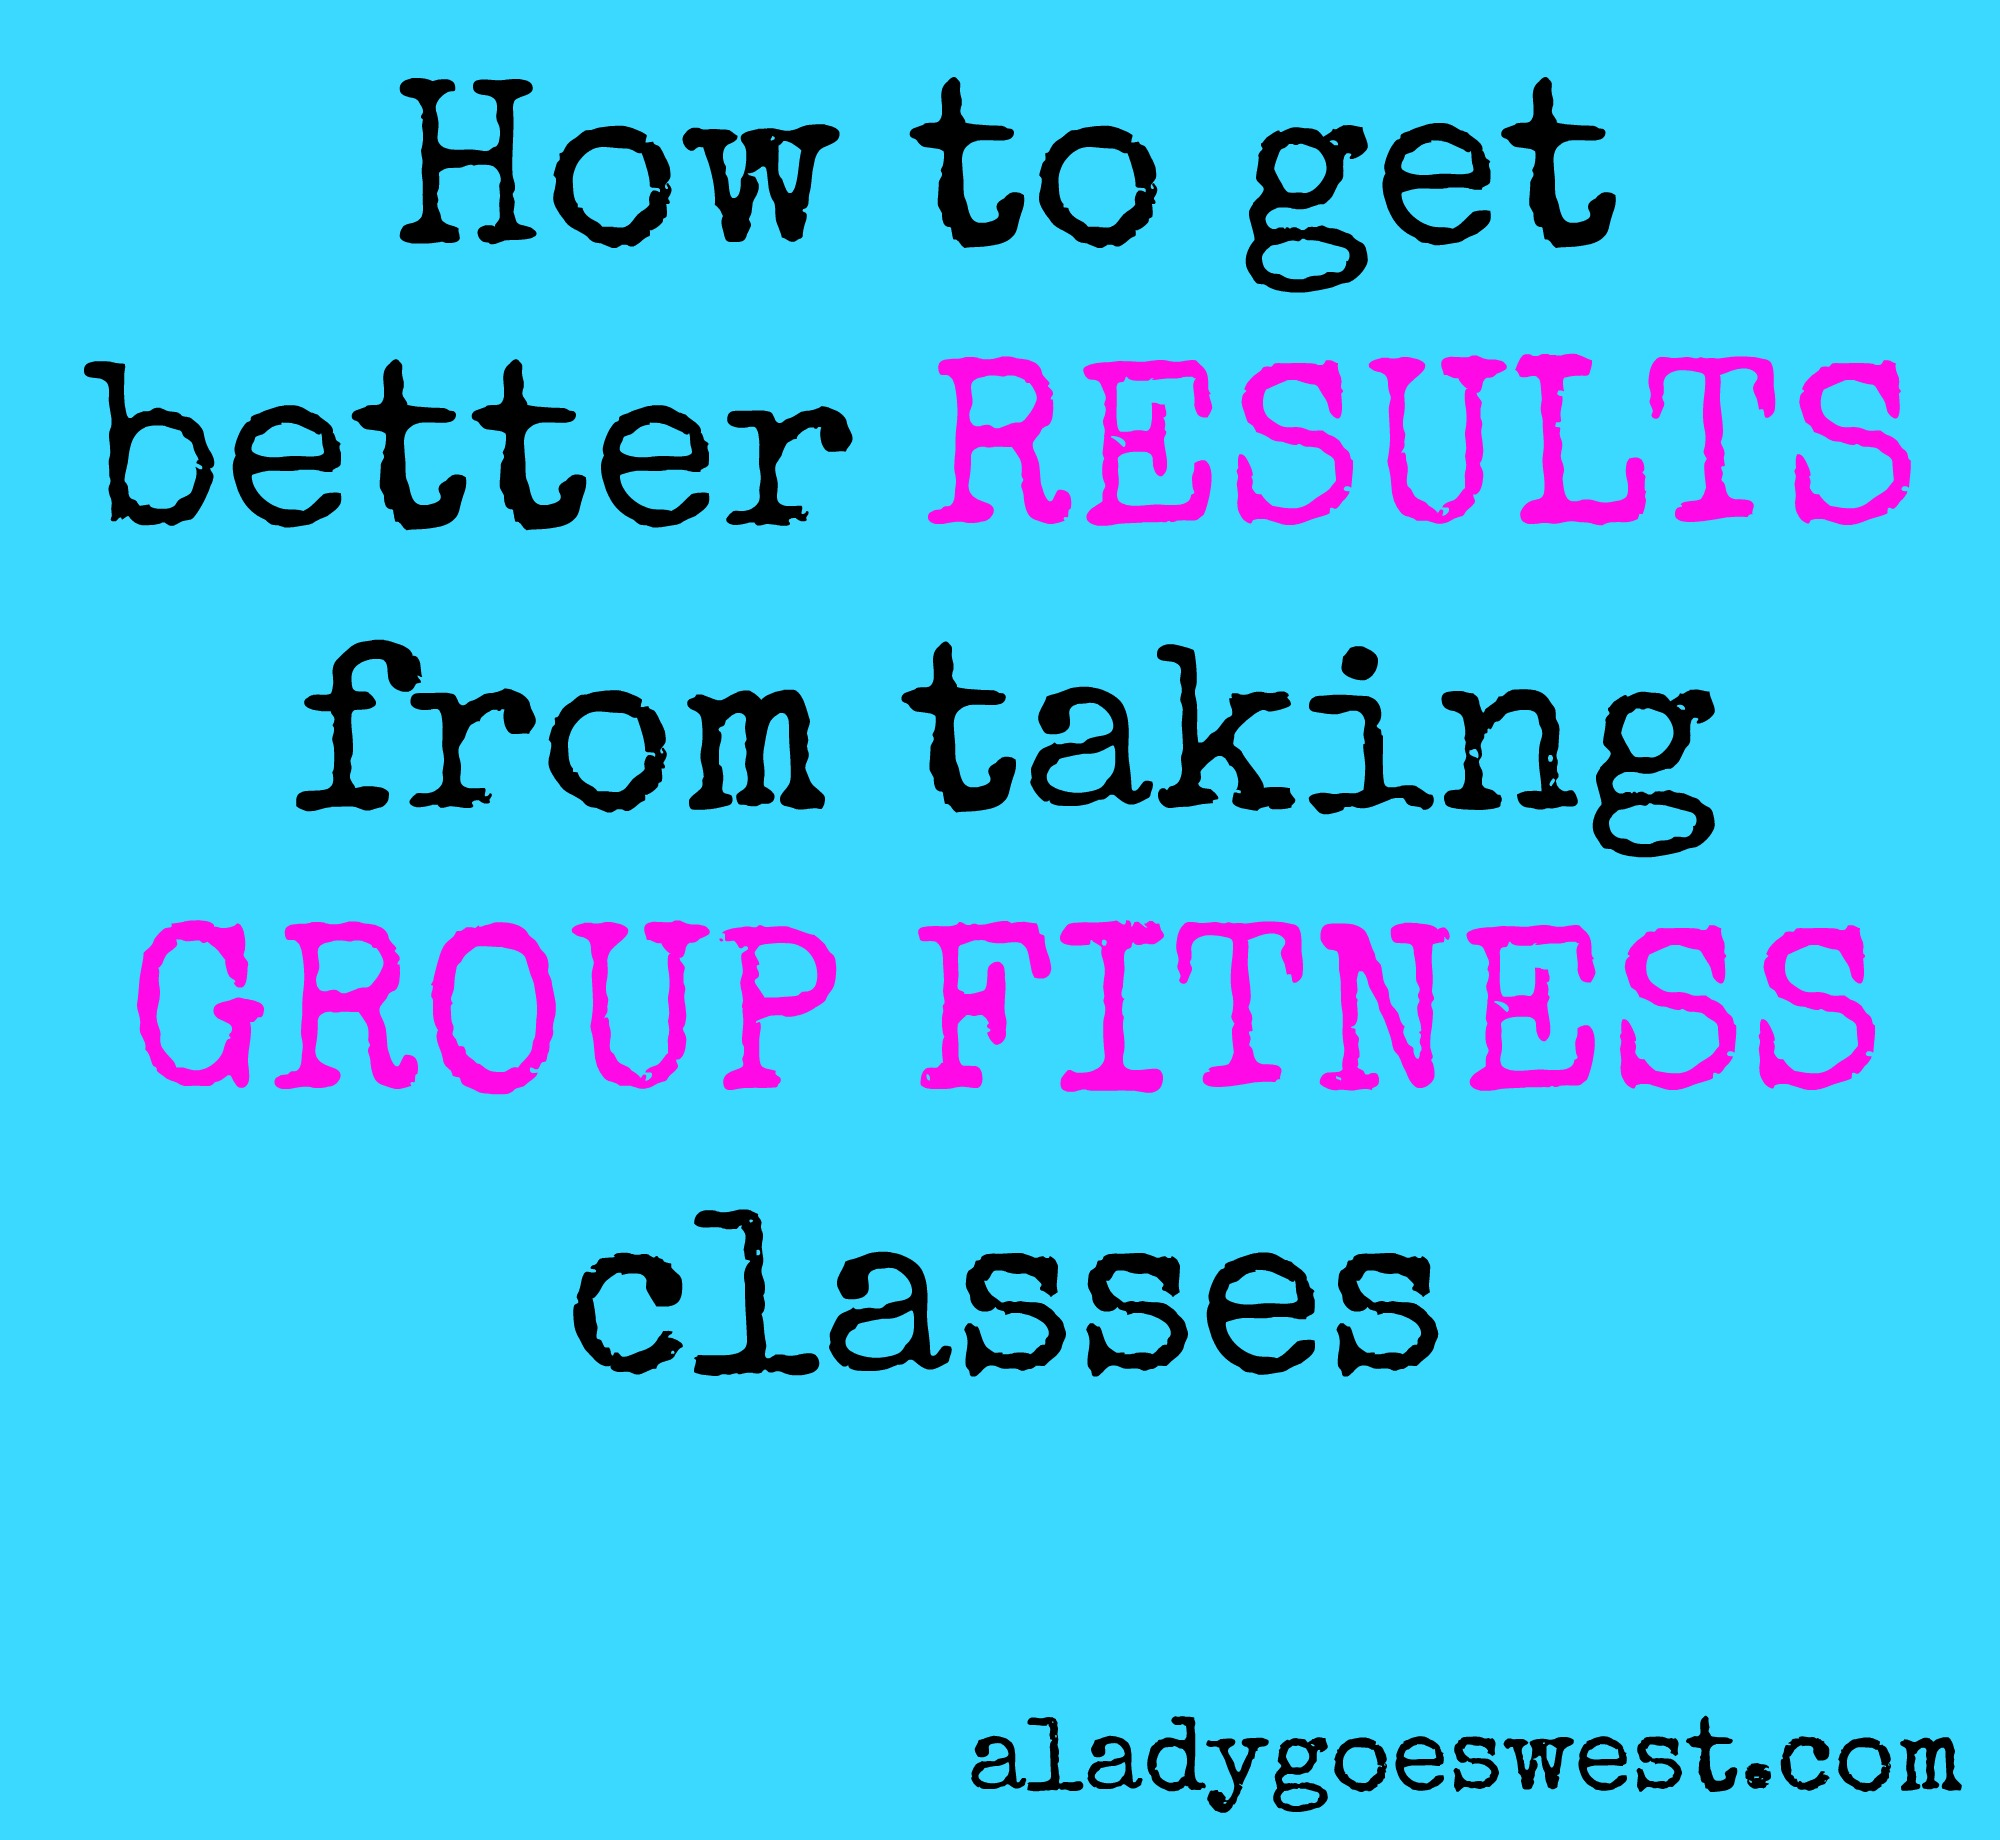 How to get better results from group fitness